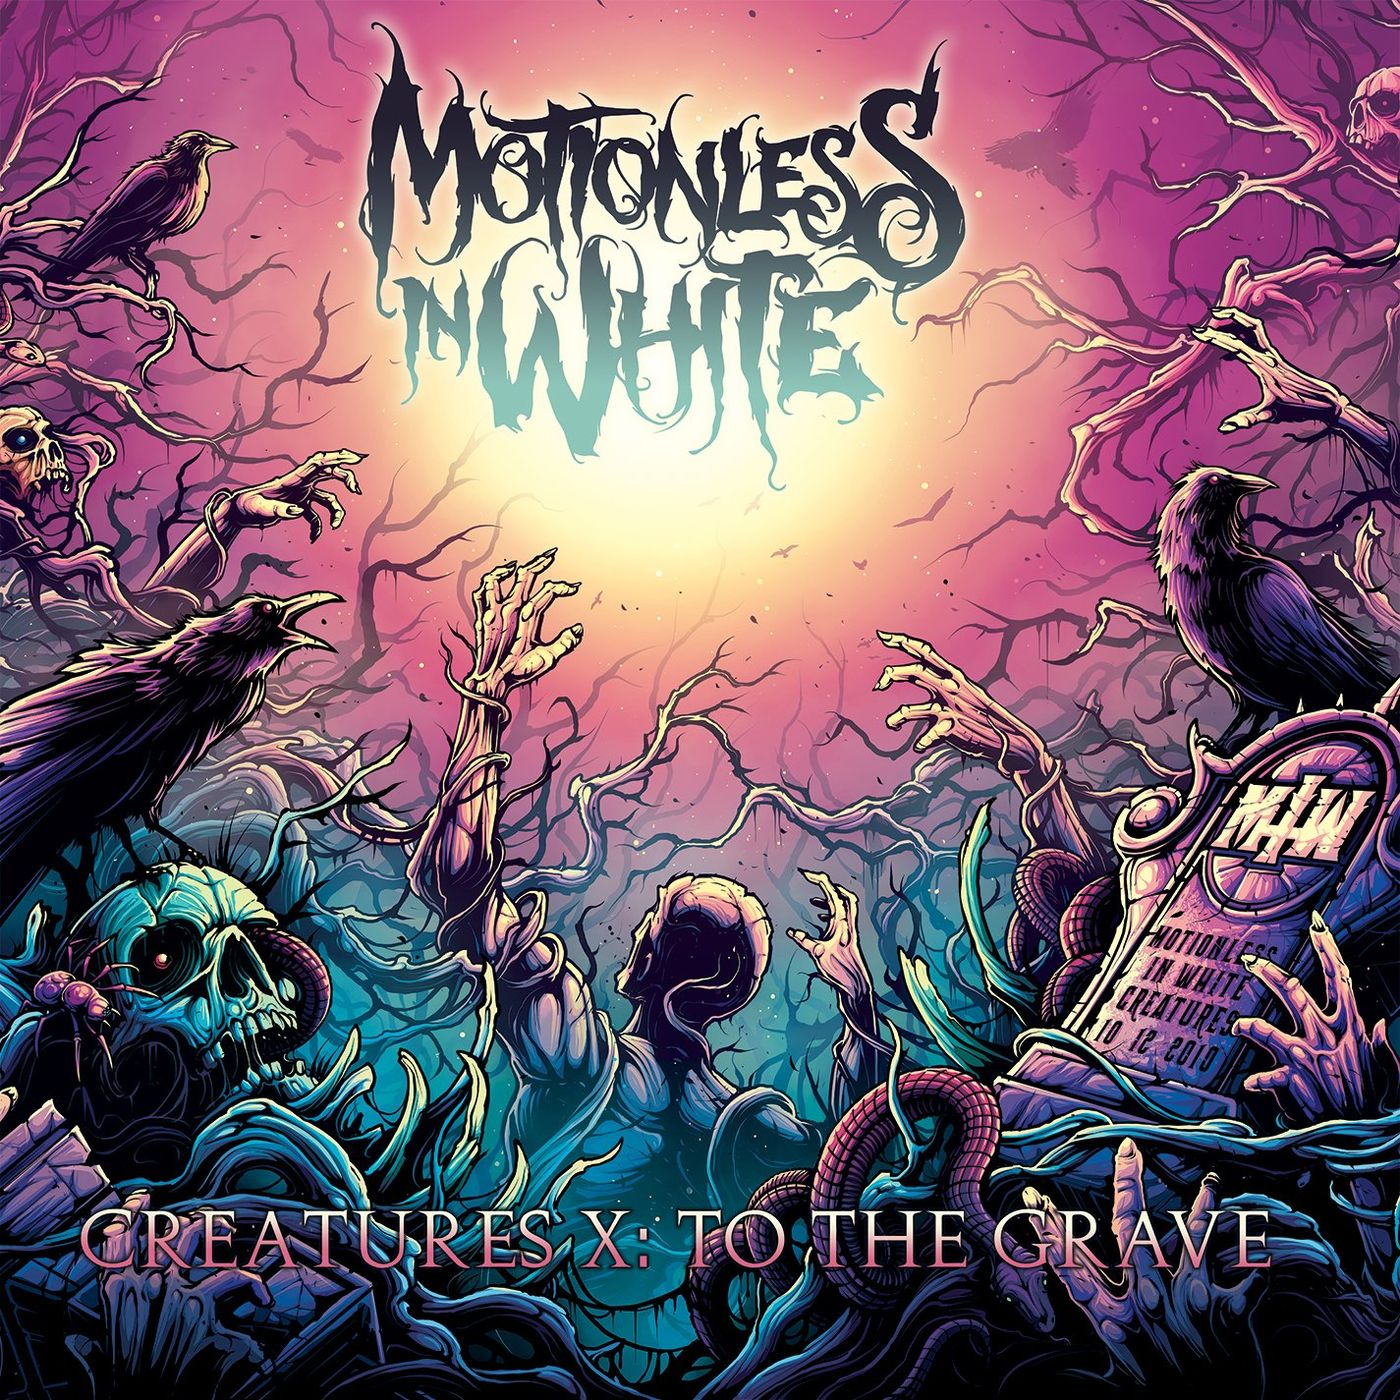 Motionless In White - Creatures X: To The Grave [single] (2020)